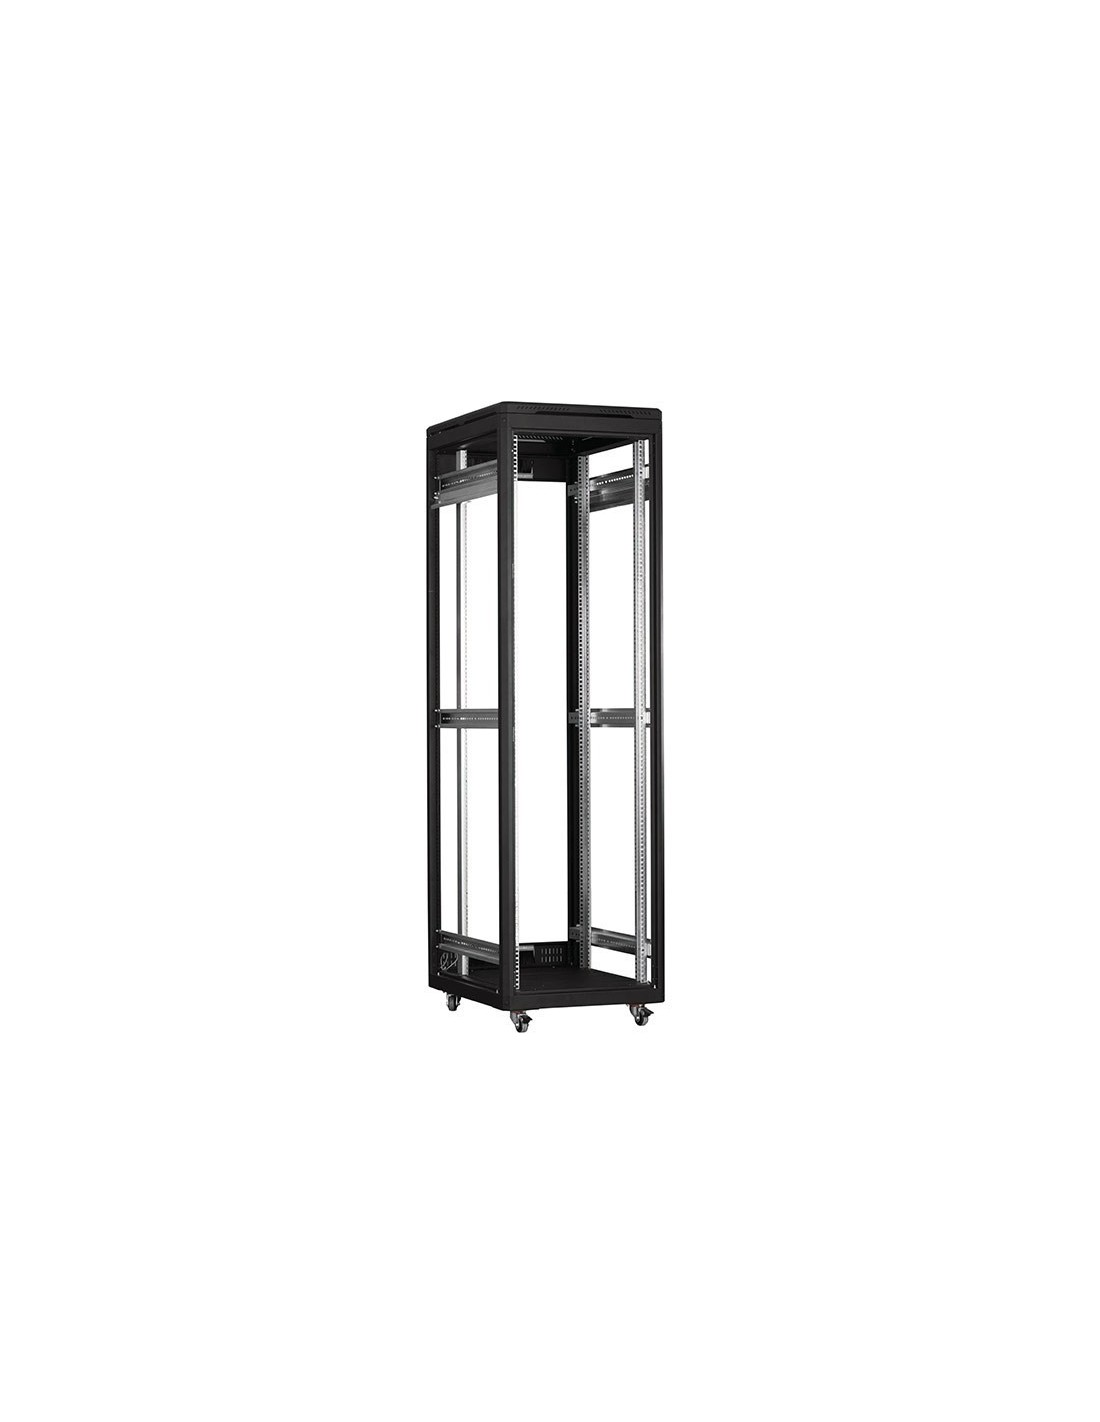 Free standing network rack cabinet 19